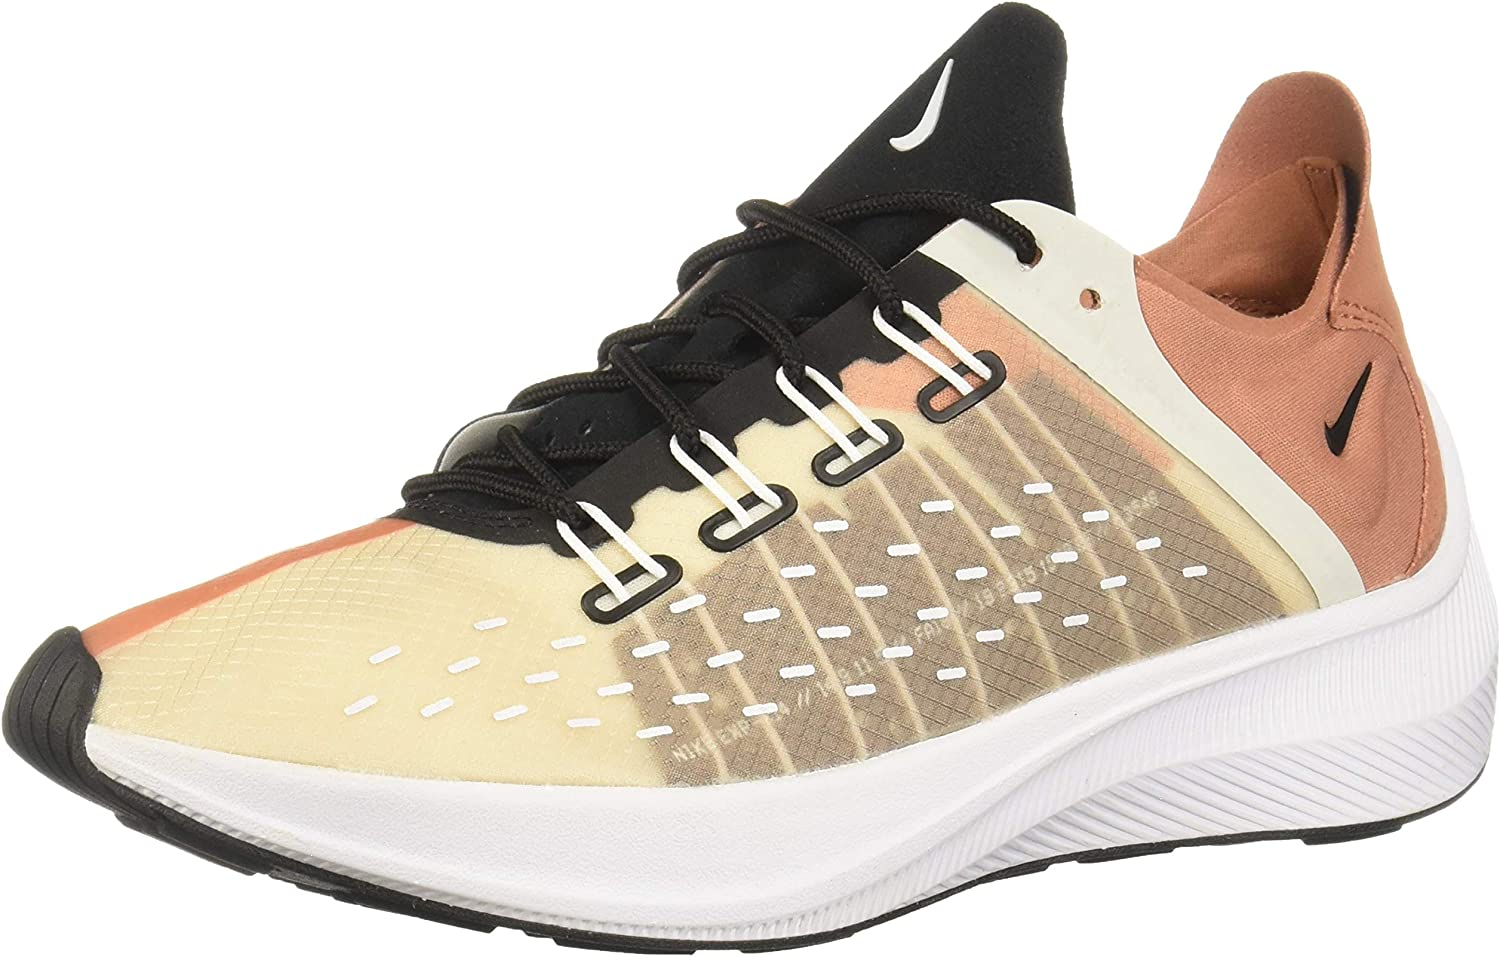 Nike Women's EXP-X14 Running shoes 8 Beige